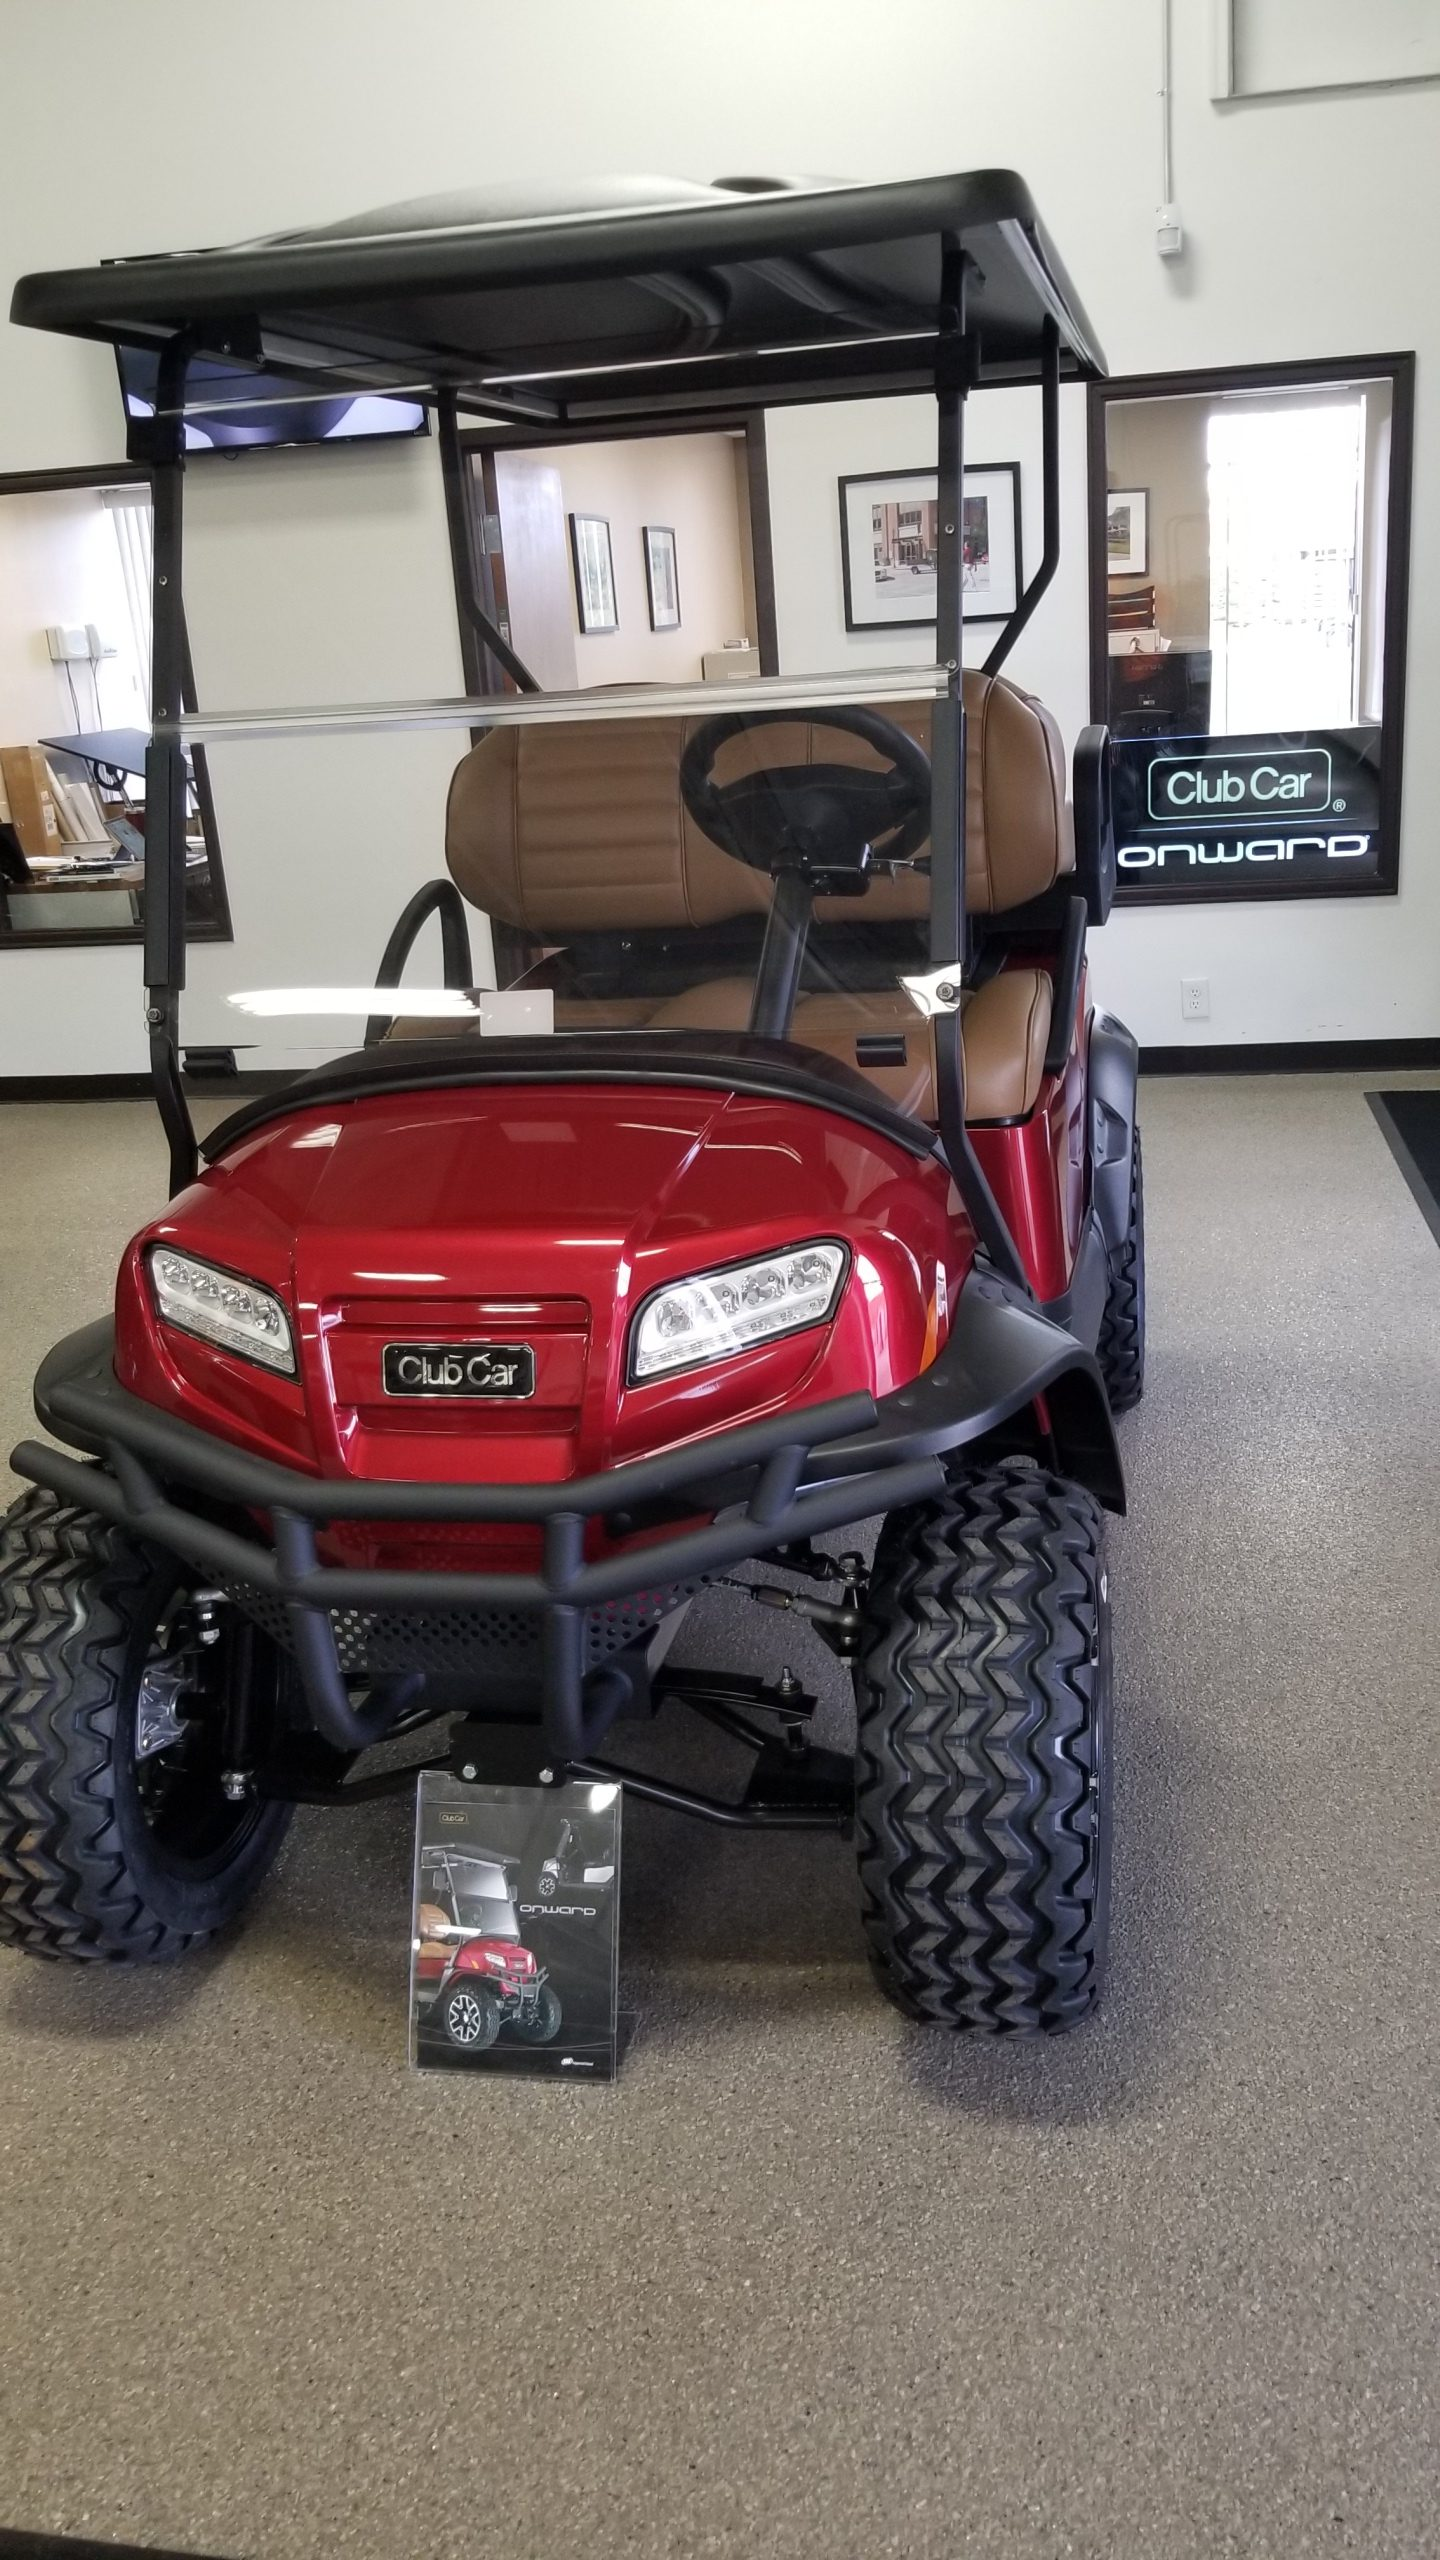 Featured Image for 2021 Club Car Onward Lifted 4 Passenger Gas